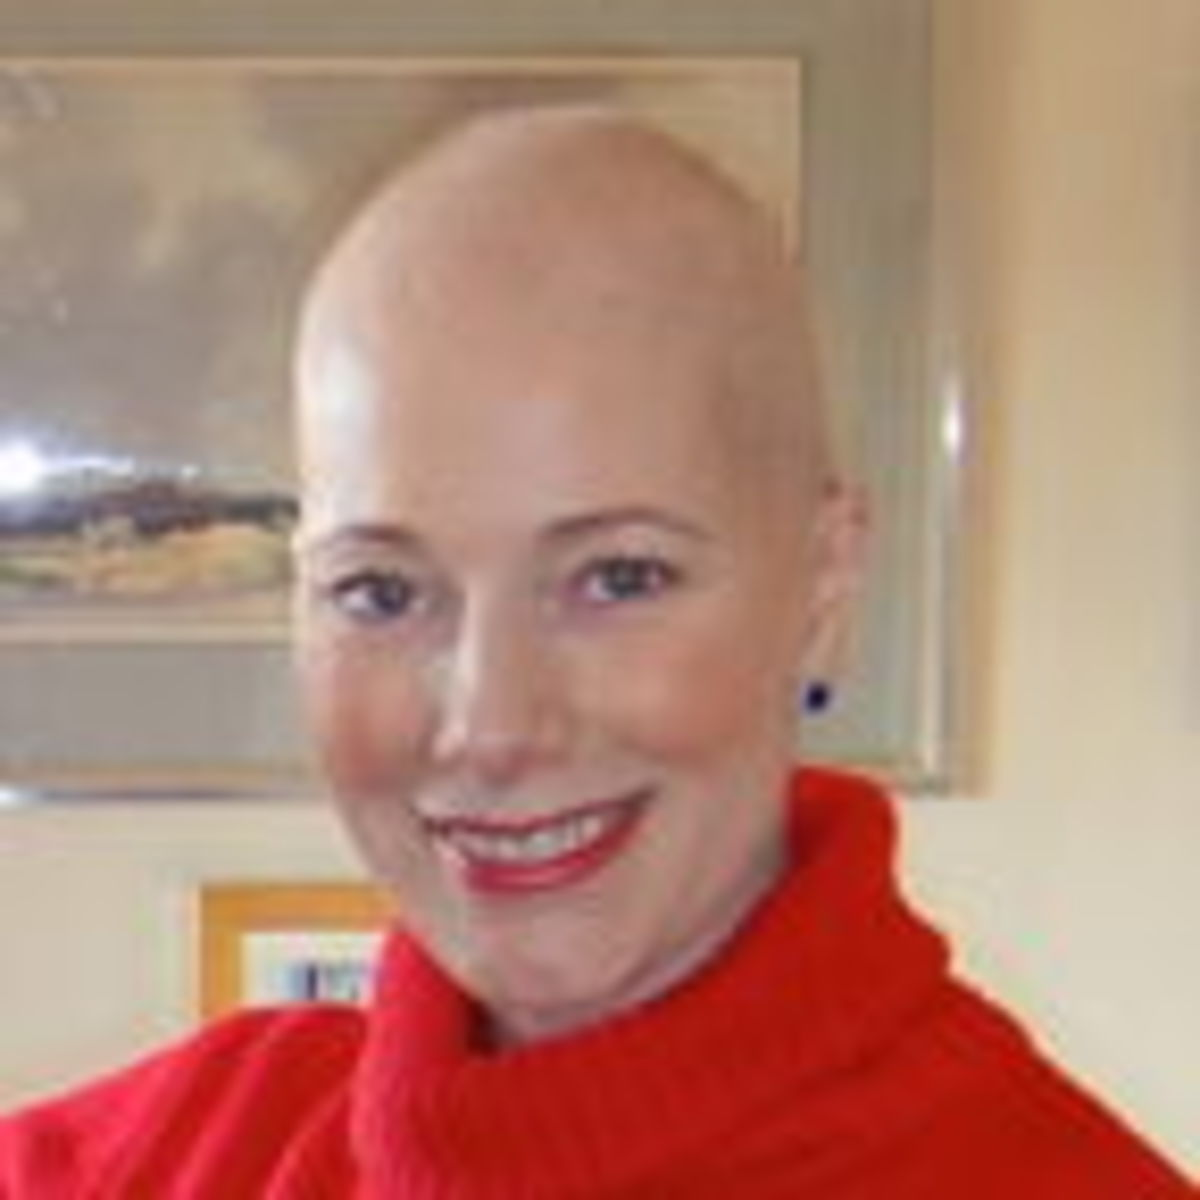 Chemotherapy: How to Get Through It | Psychology Today